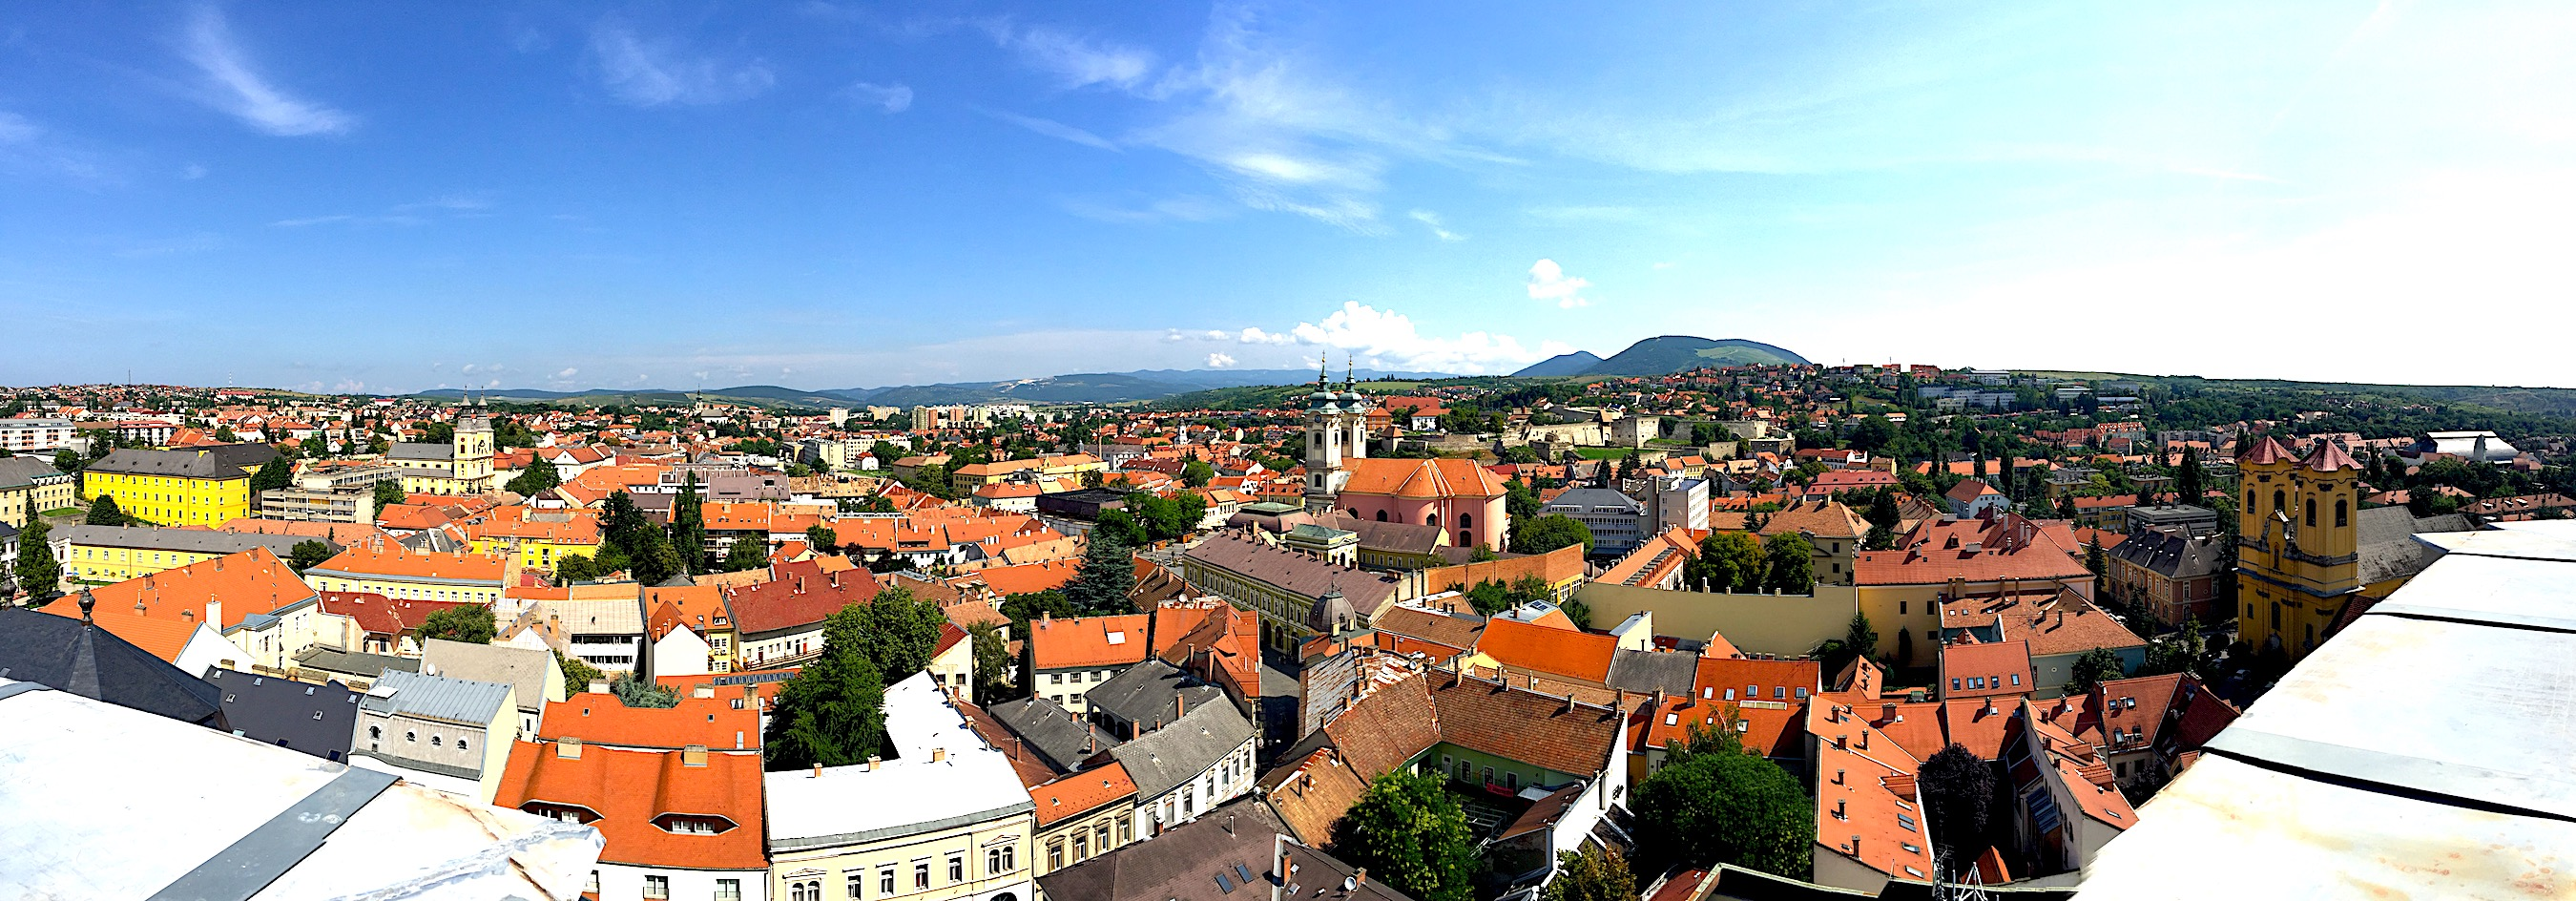 View of the city of Eger.